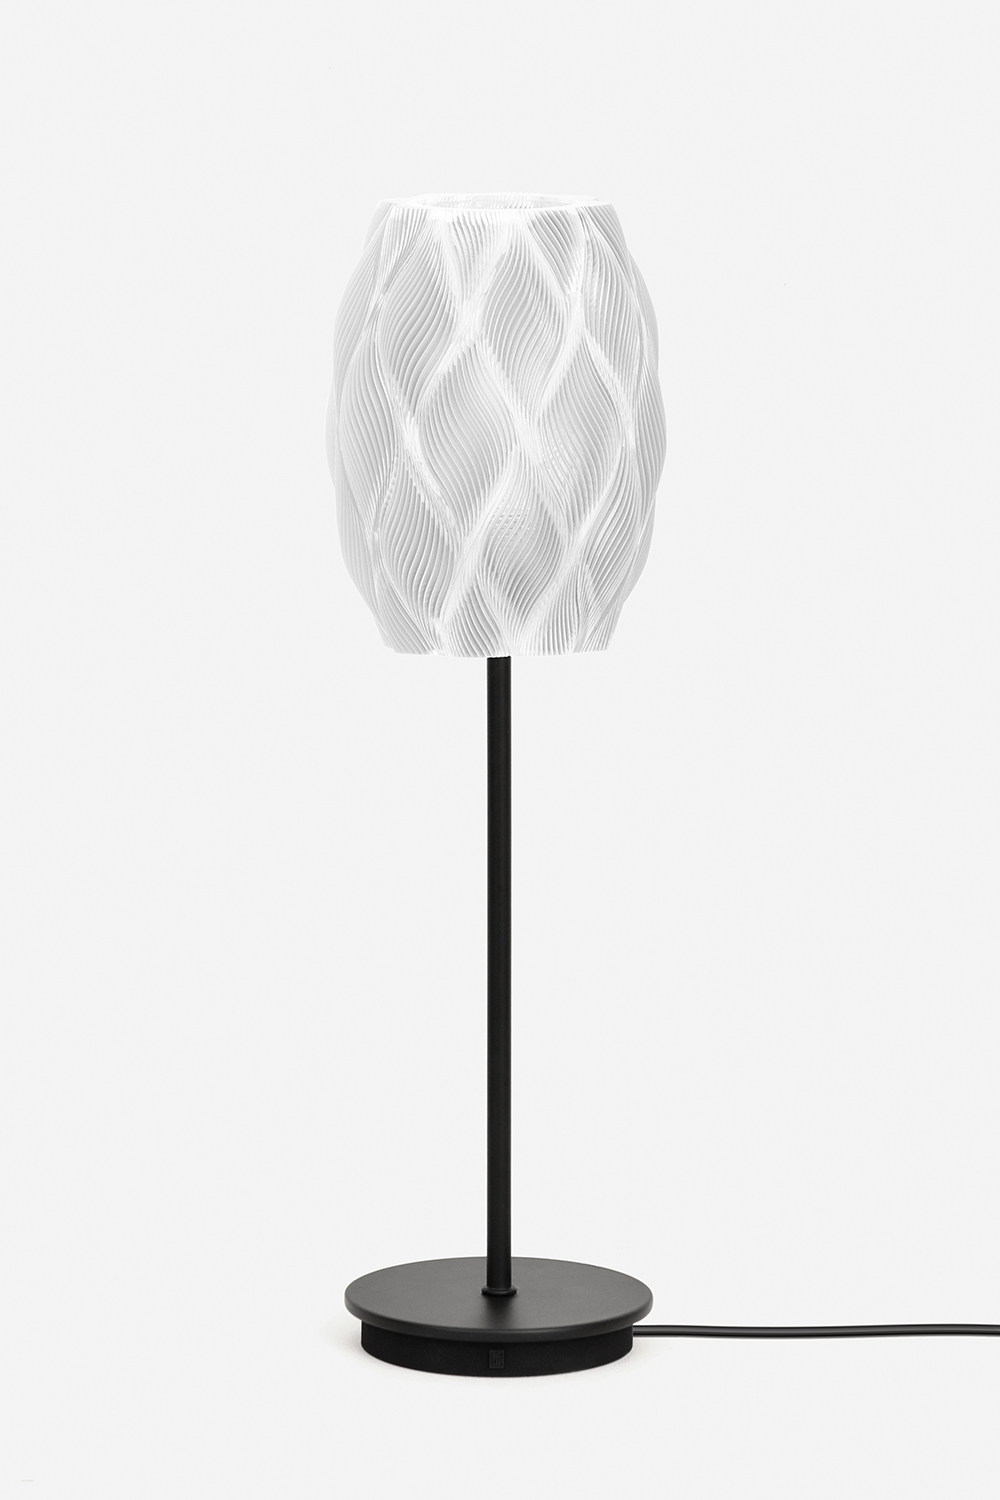 Lamellae Table Lamp, Design by Matthijs Kok